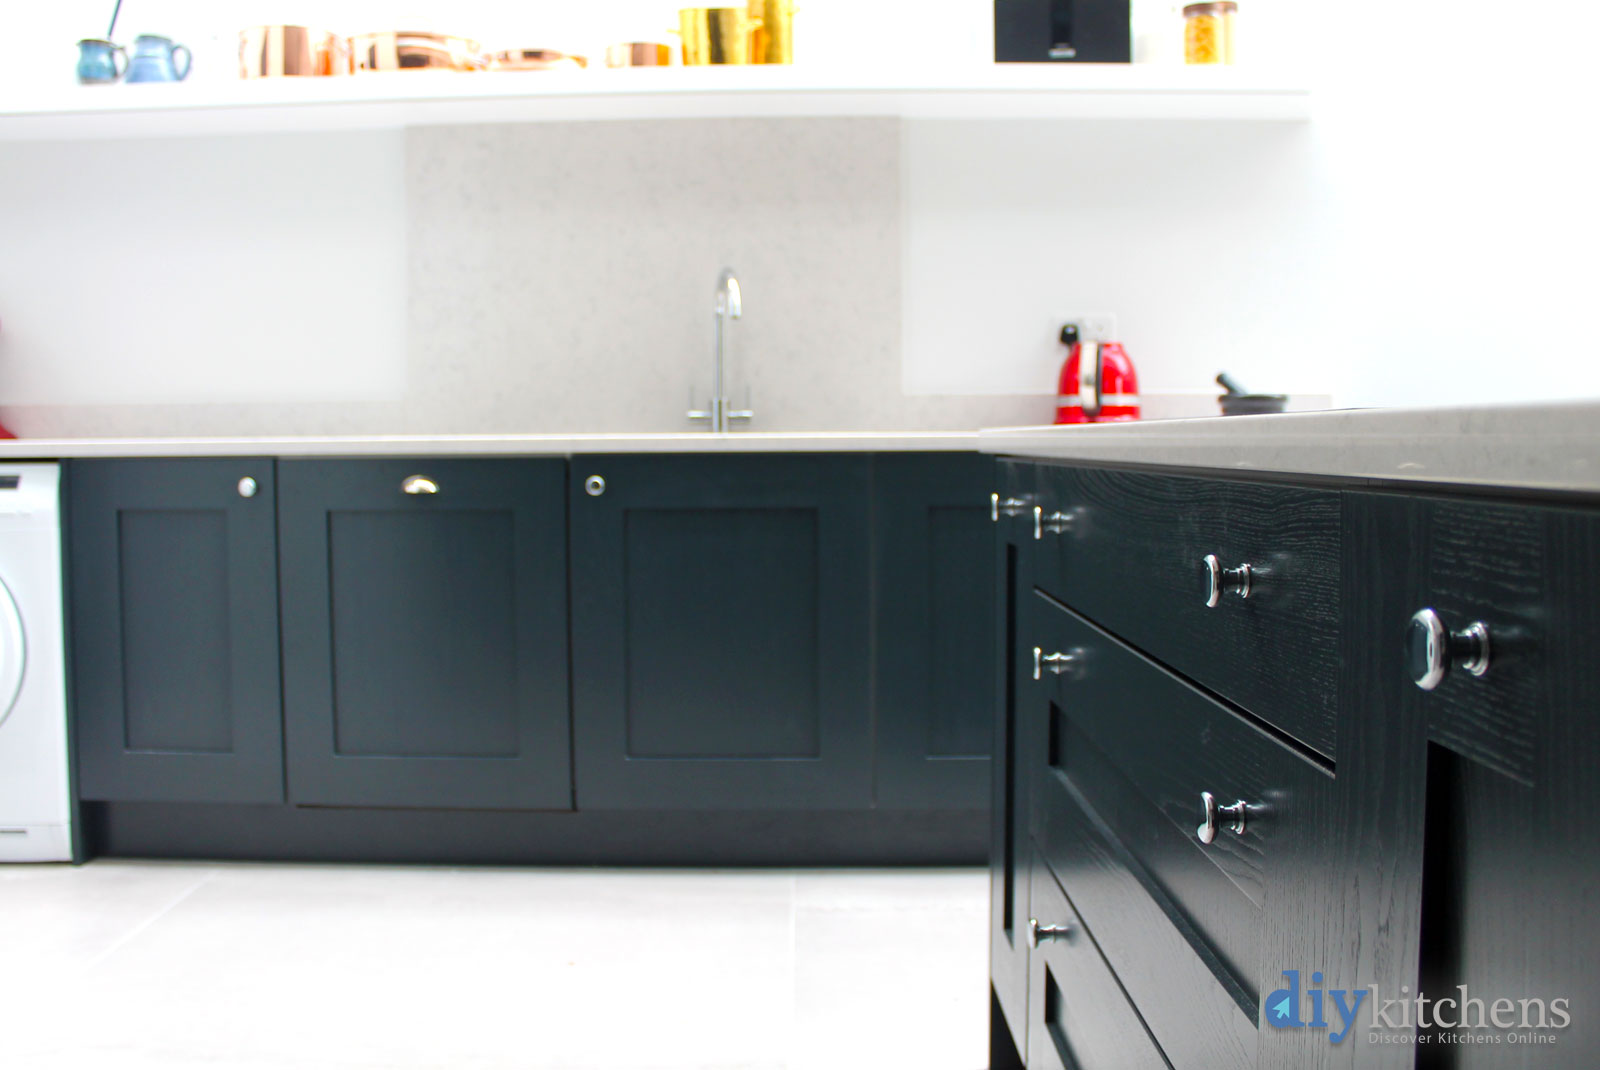 Start styling for Wickes kitchen carcass